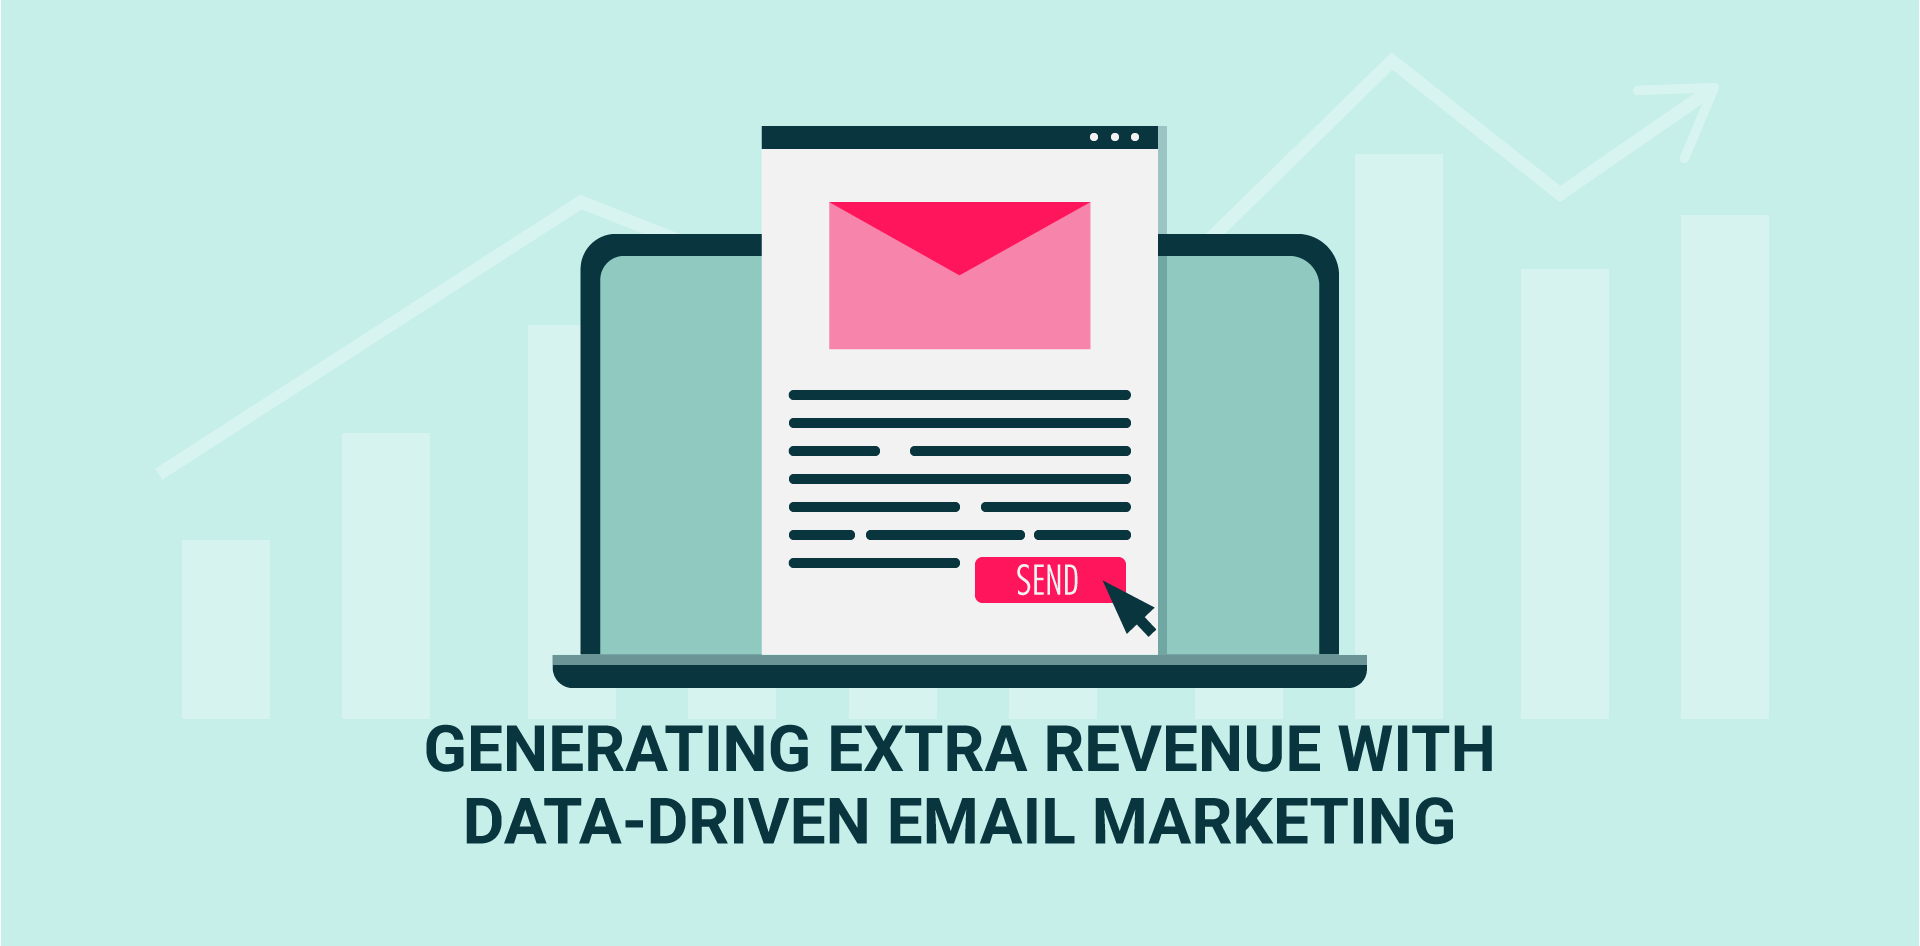 Generating extra revenue with data-driven email marketing campaigns